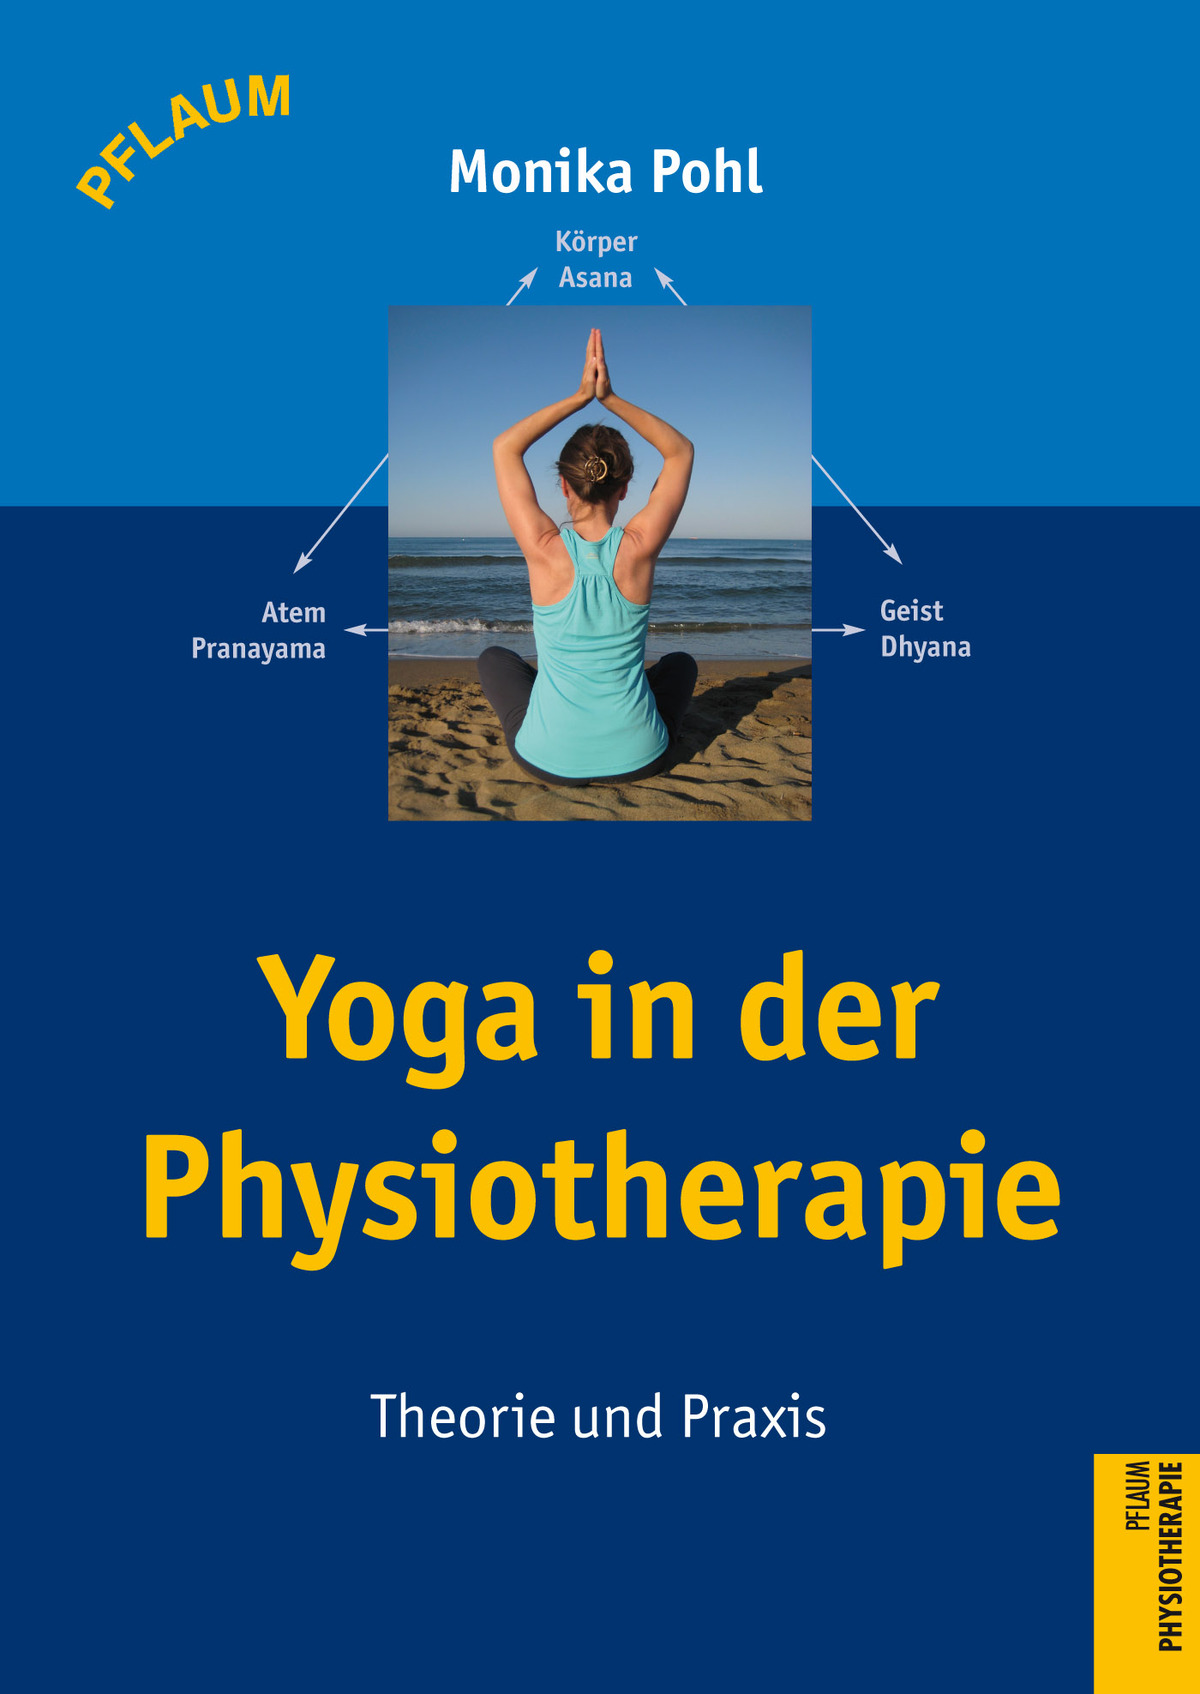 Yoga in der Physiotherapie By: Monika Pohl